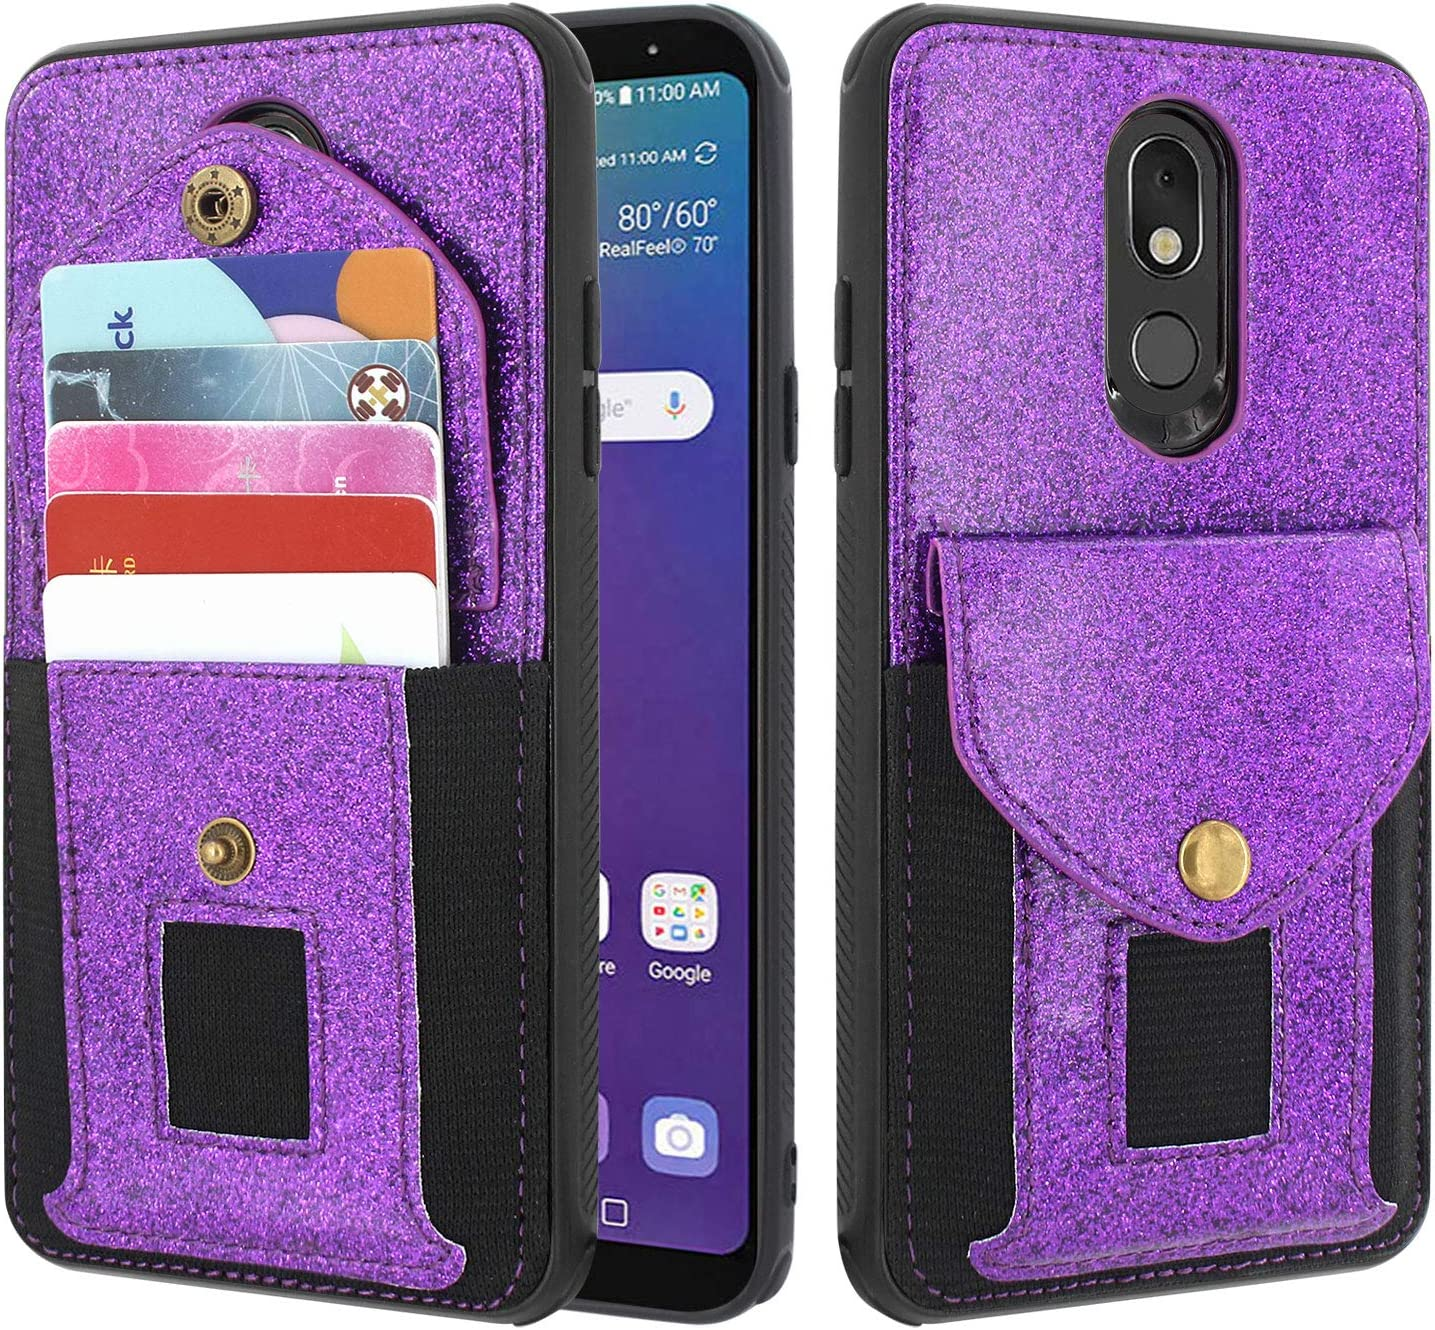 Lacass Shockproof Slim Leather Wallet Case Protective Cover with Elastic Pocket Credit Card Slot Holder for LG Stylo 5 / Stylo 5 Plus/Stylo 5V (Glitter Purple)